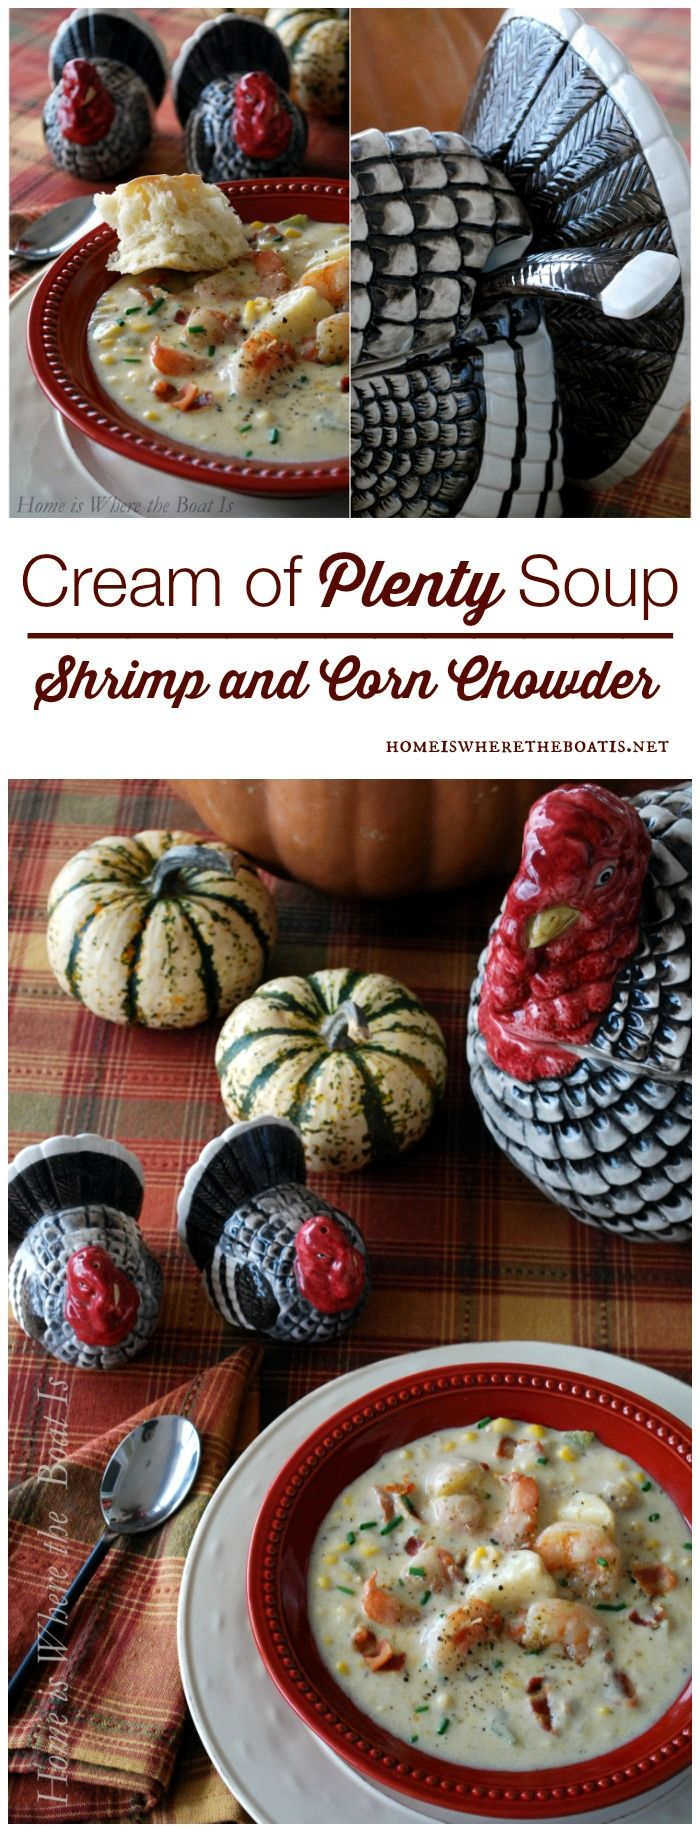 Cream of Plenty Soup, aka, Shrimp and Corn Chowder